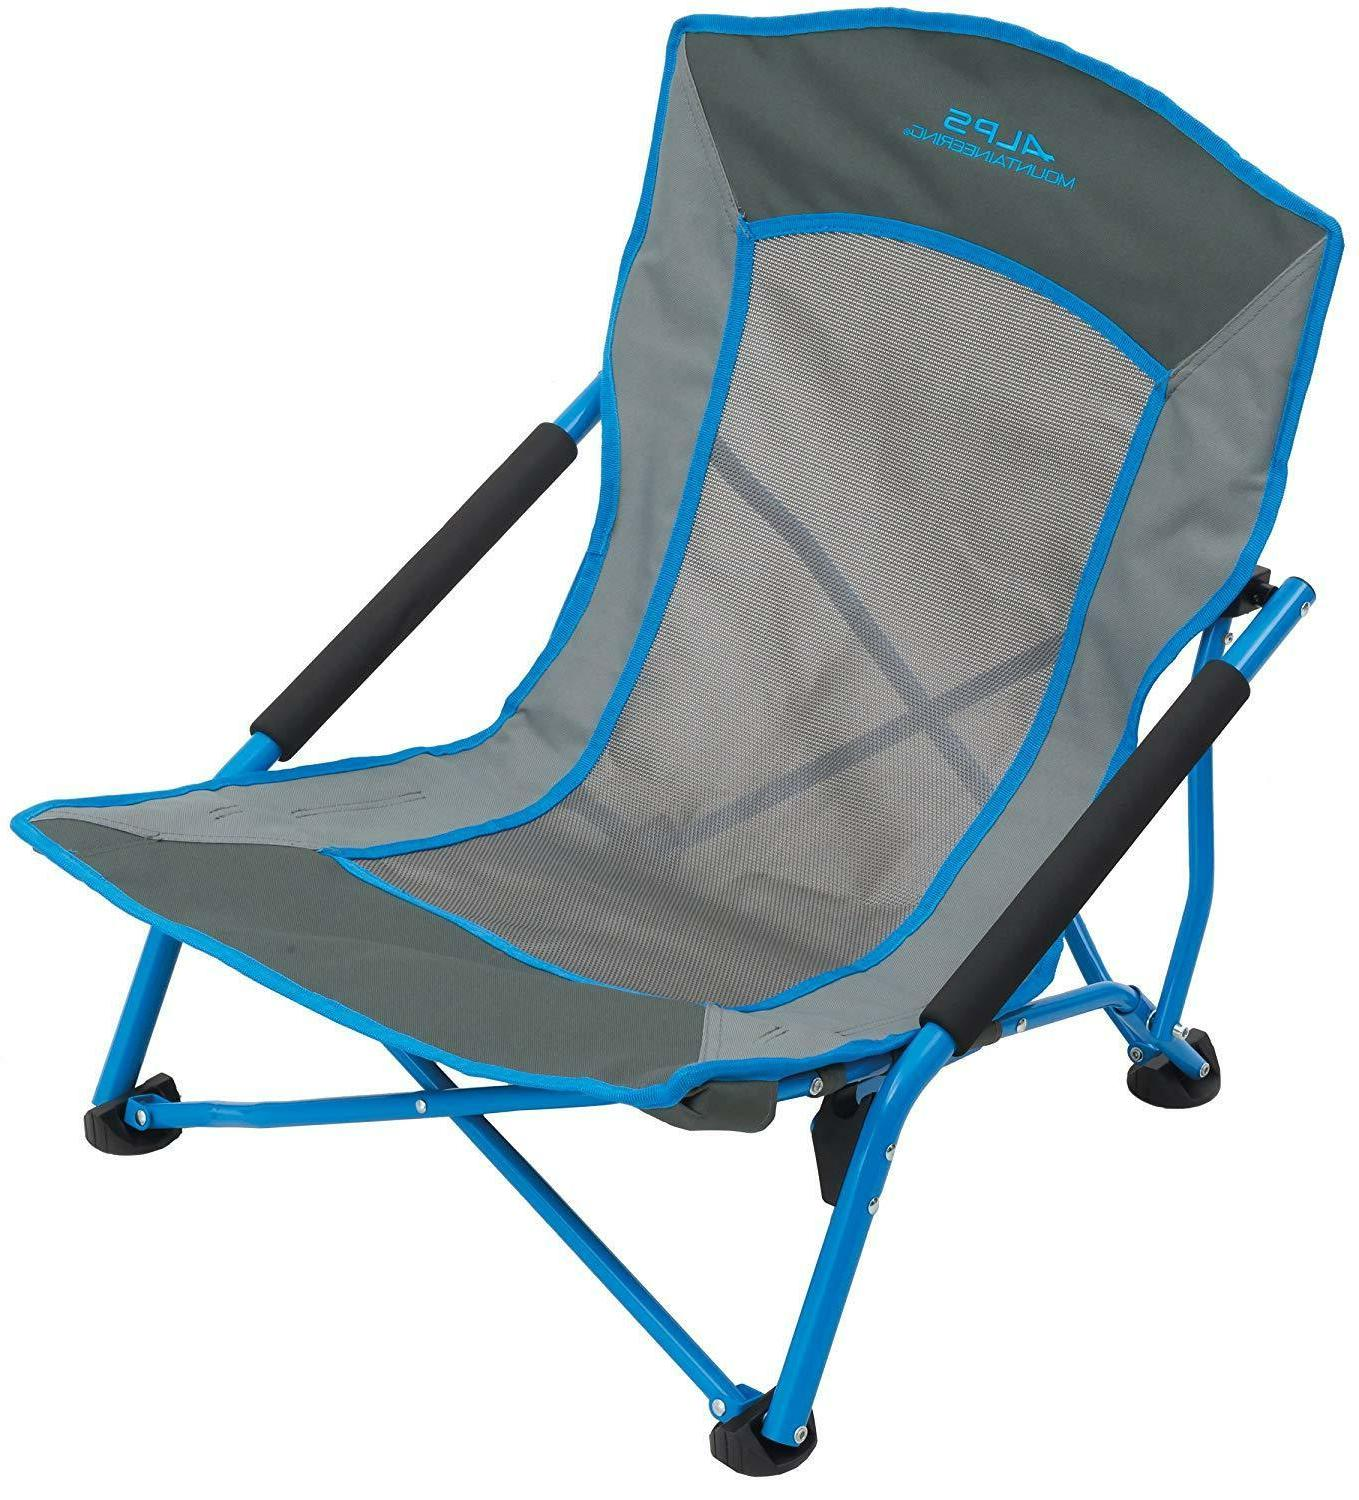 folding chair easy to carry camping beach